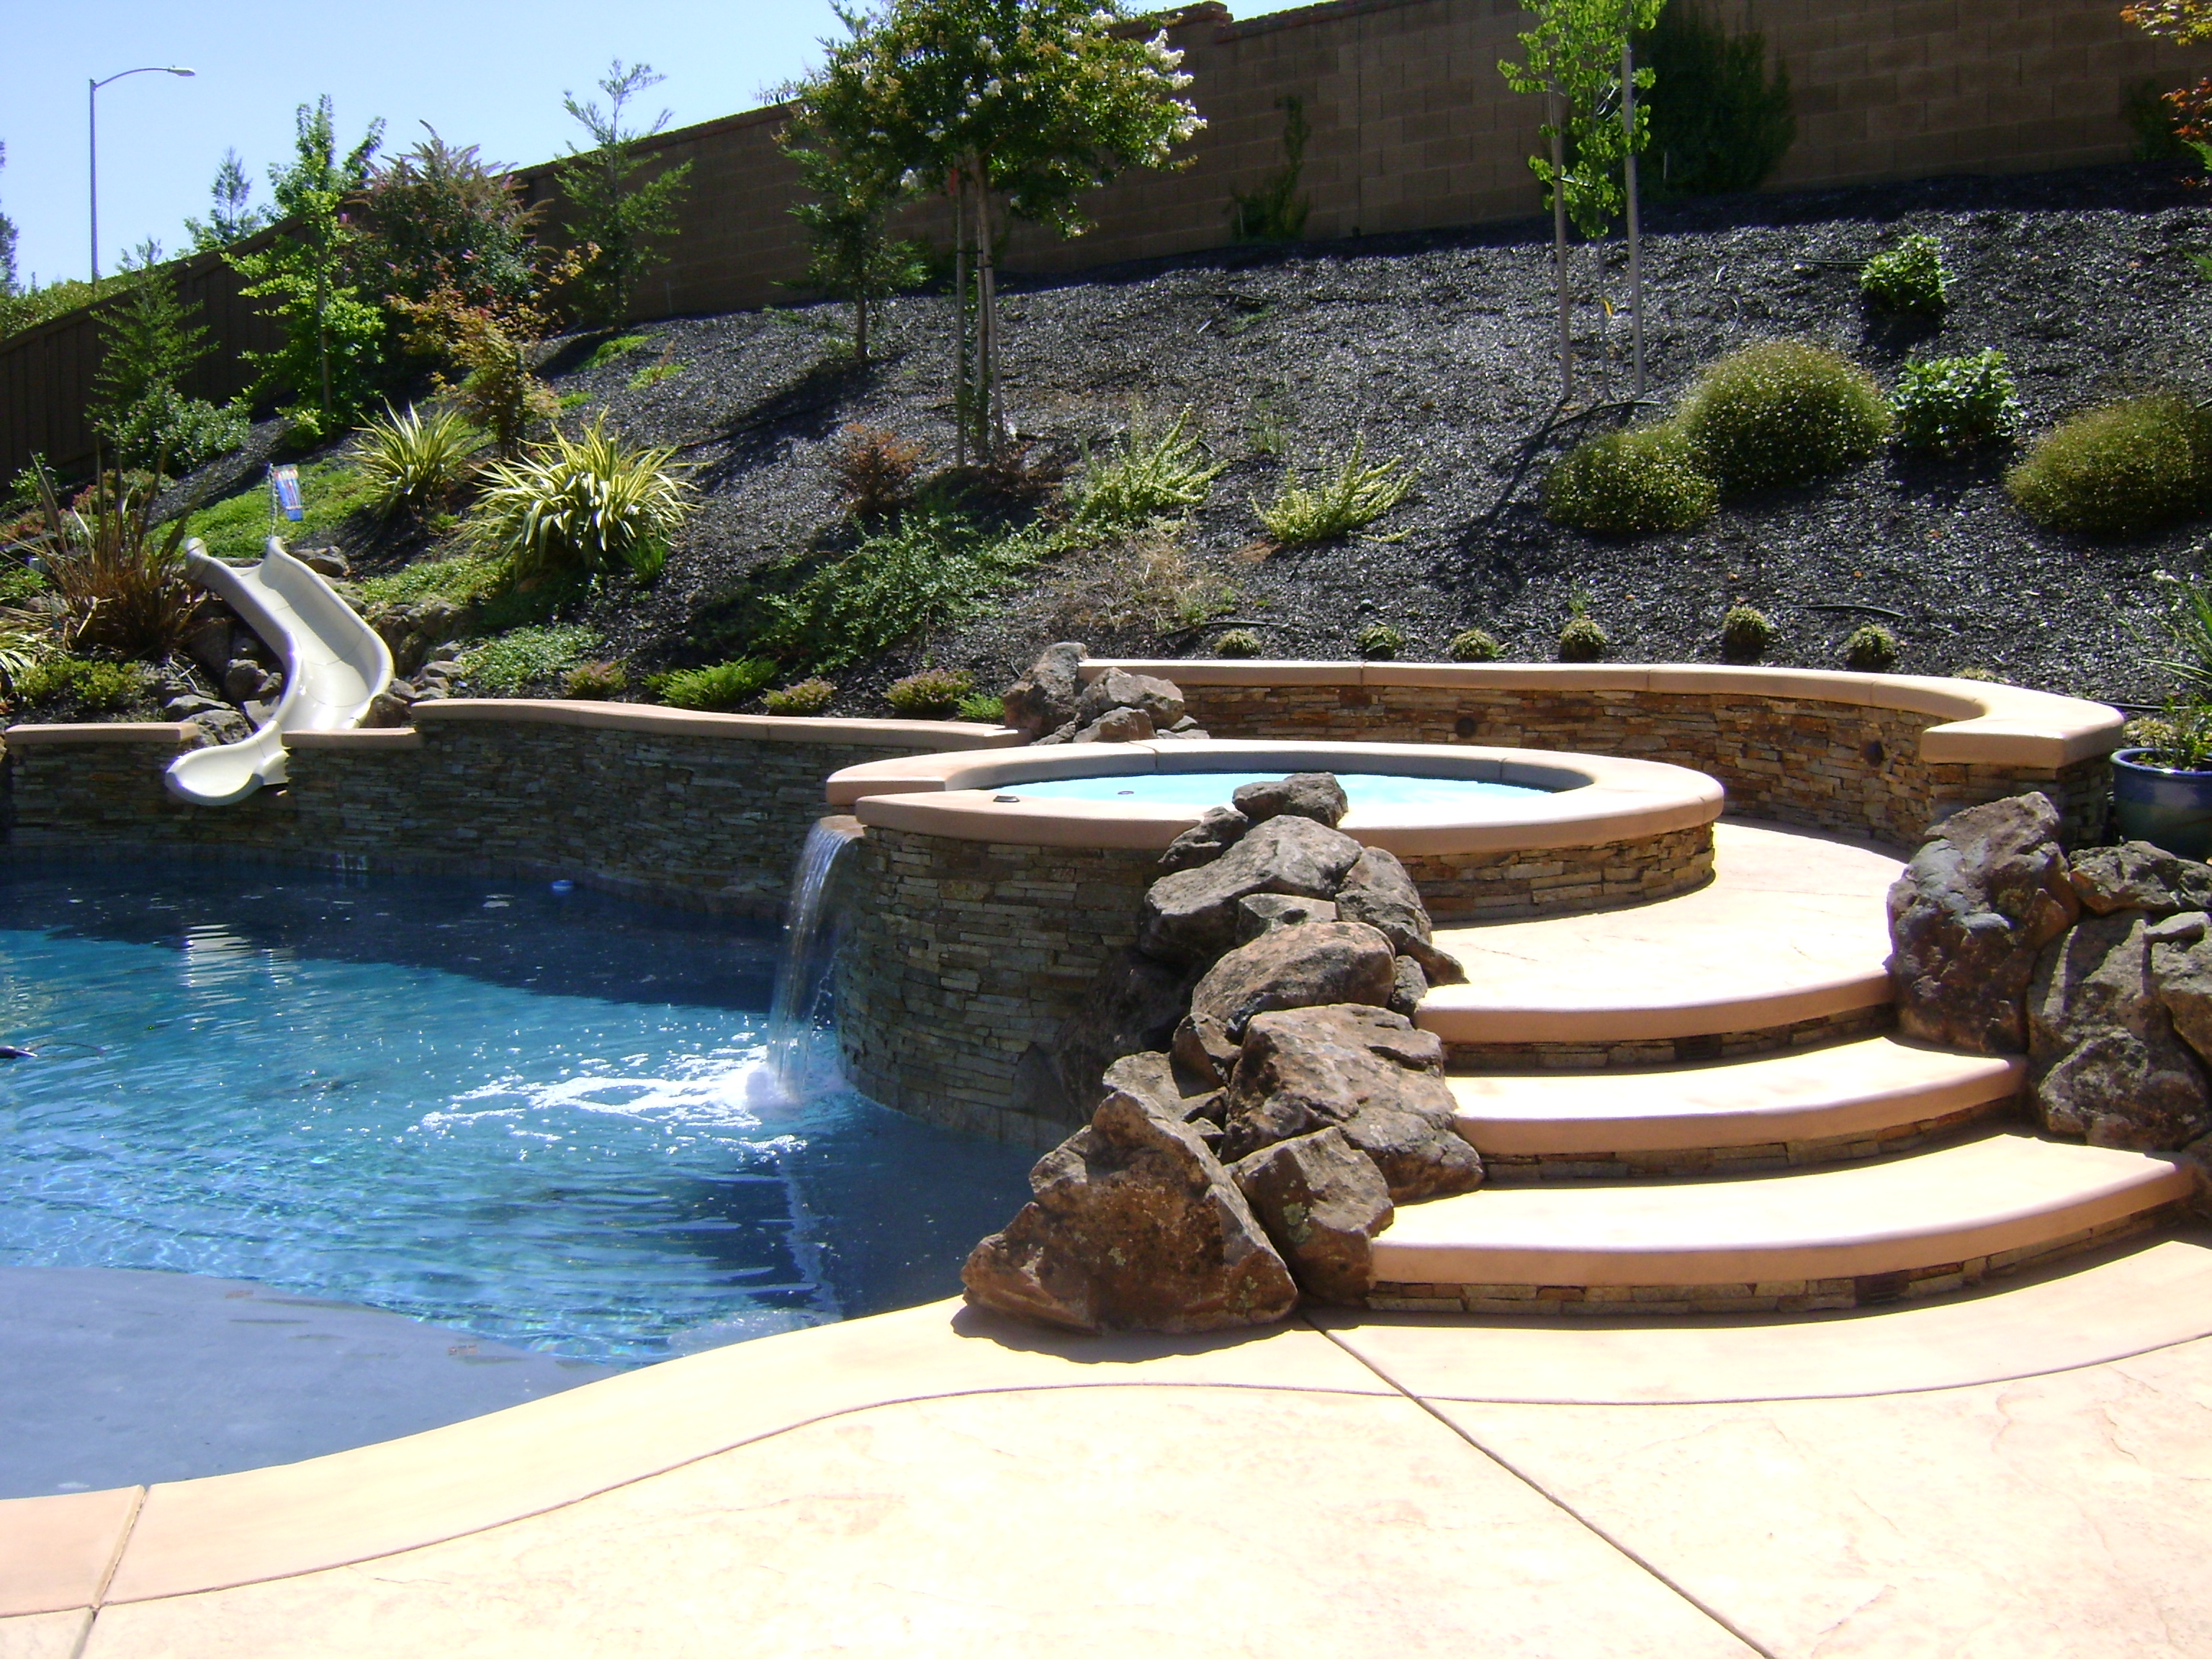 Design Your Own Swimming Pool photo 1 of 8 design your own backyard 1 design own backyard pool yard designs design your own swimming Swimming Poolspa Design